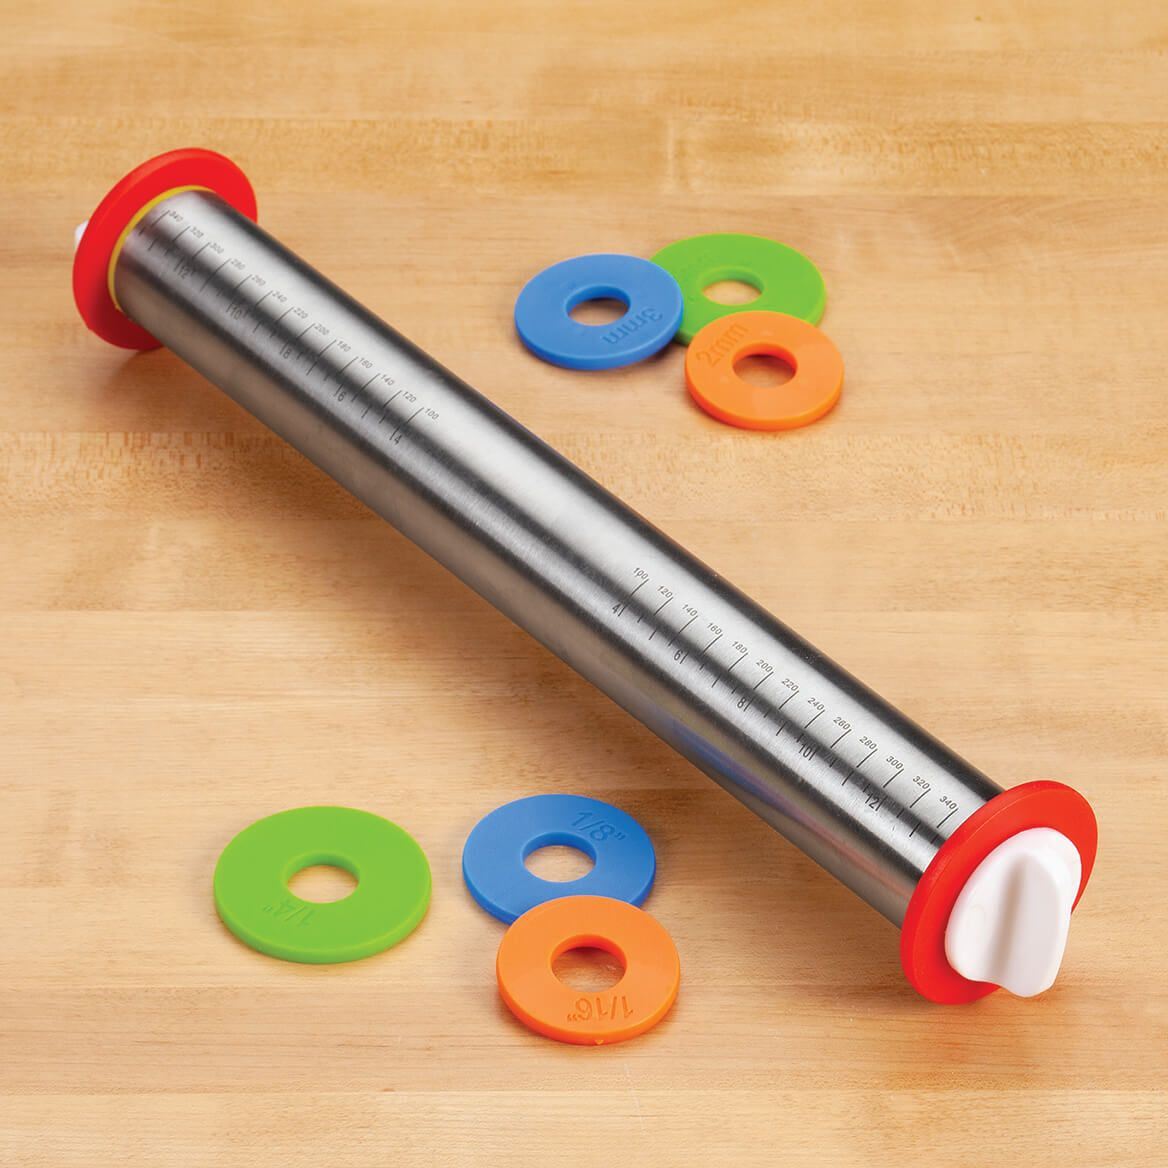 Stainless Steel Adjustable Rolling Pin with Rings-372022